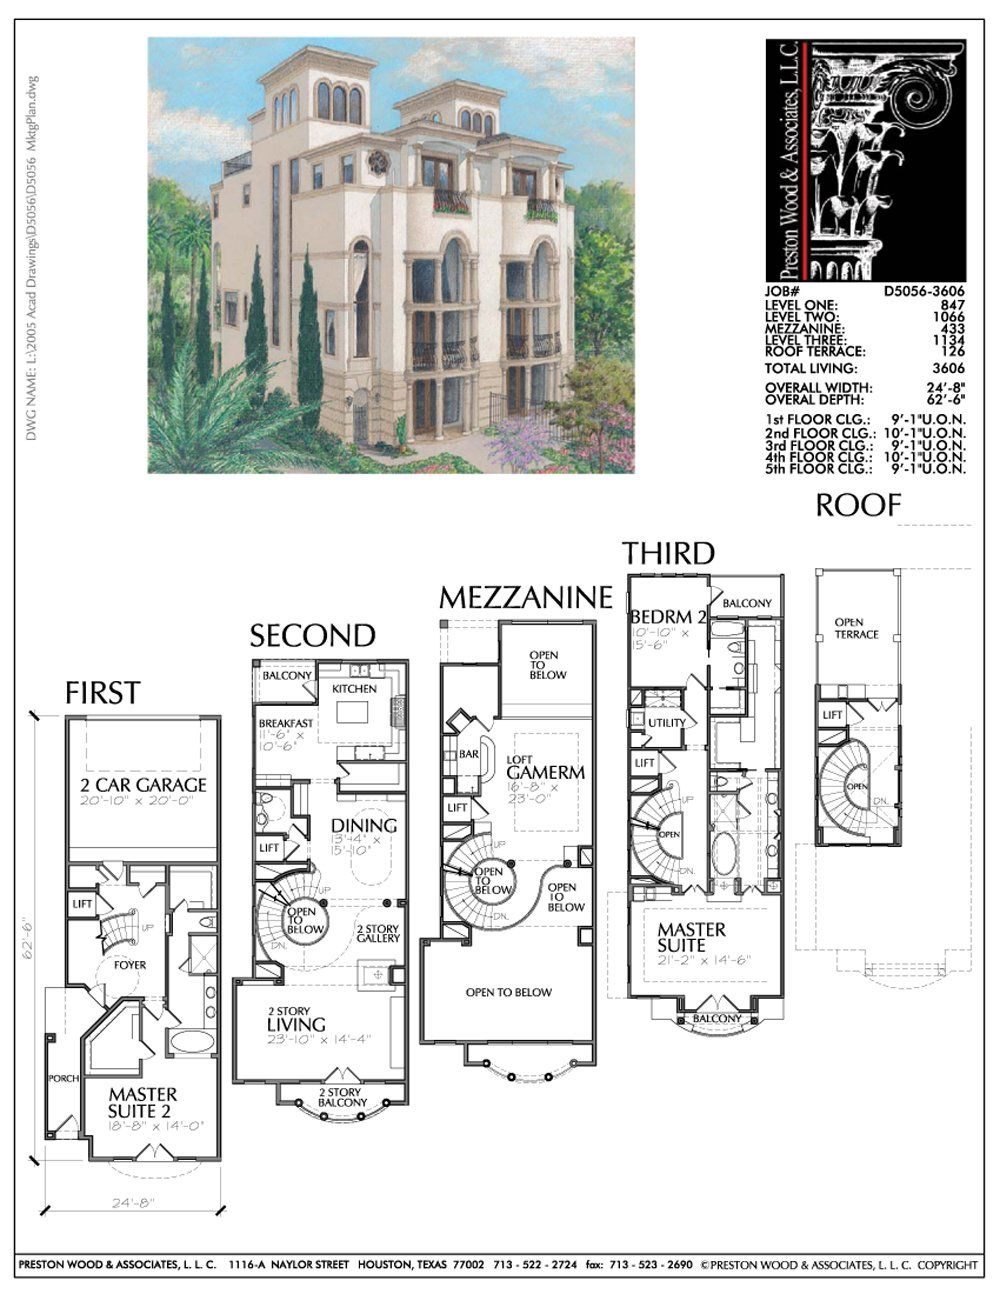 Townhomes, Townhouse Floor Plans, Urban Row House Plan ... on townhouse elevations, townhouse flooring, basketball courts layouts, townhouse furniture layouts, townhouse kitchen layouts, townhouse apartment, townhouse with garage plans,